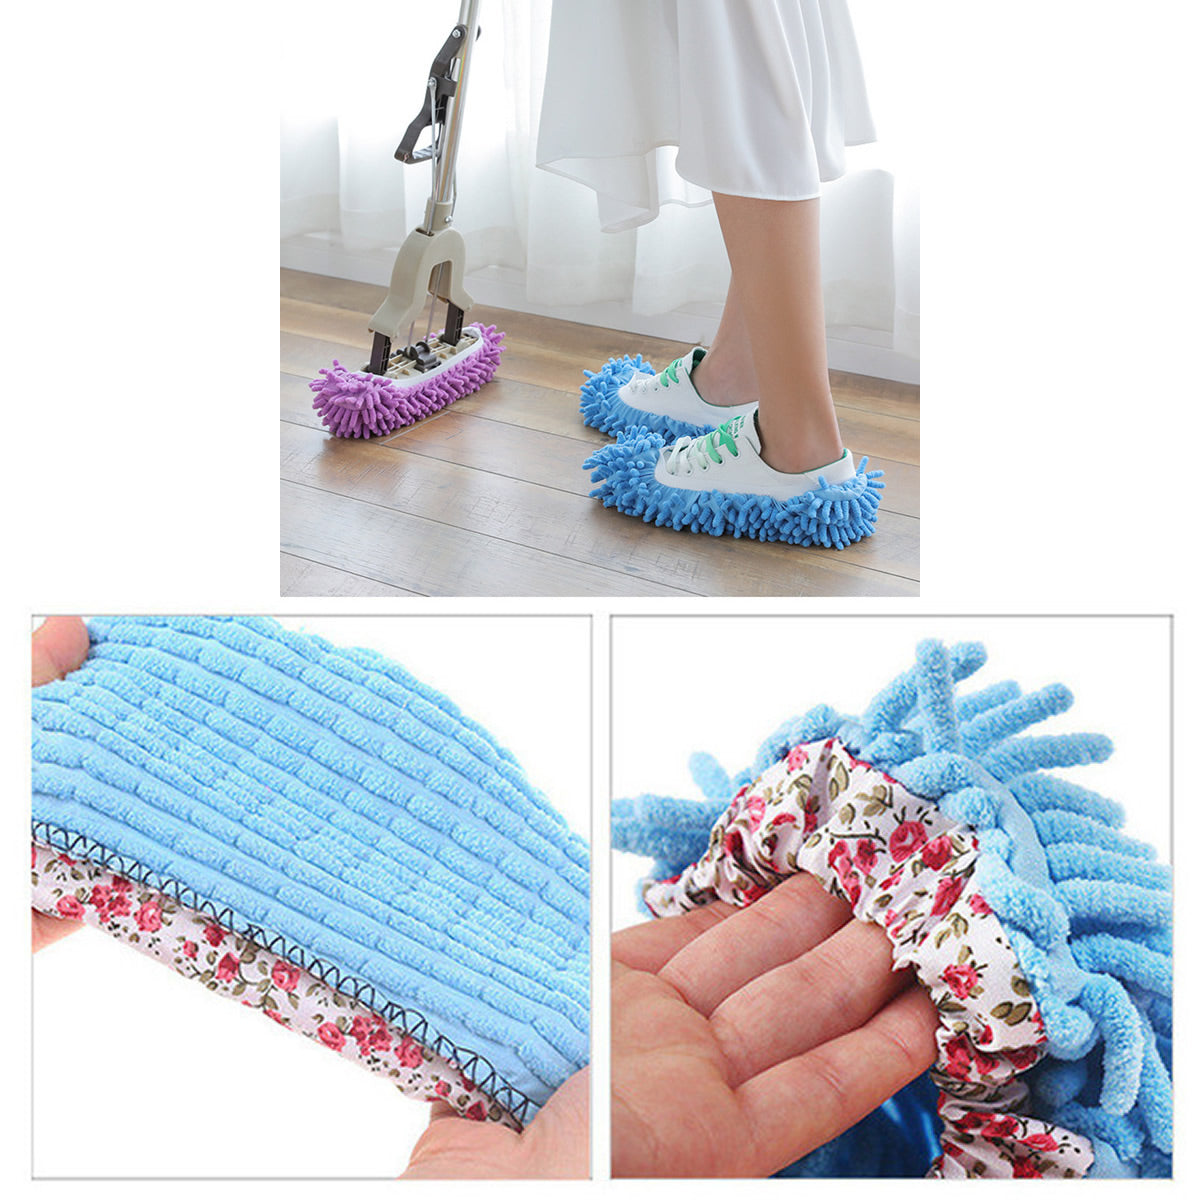 shopify-Lazy Maid Quick Mop Slip-On Slippers 3 prs / 6 pcs-6